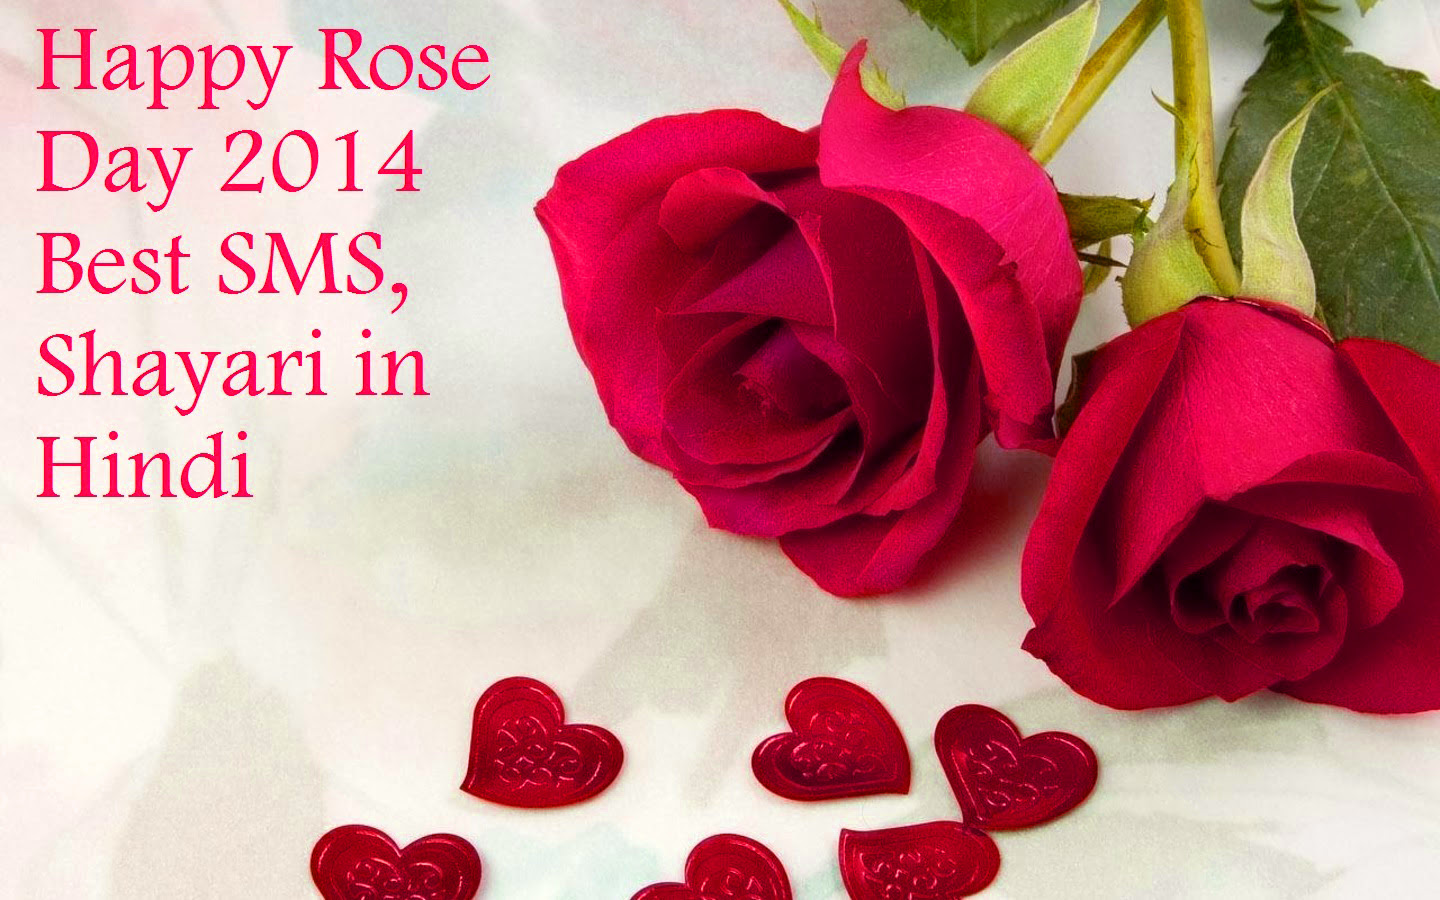 Happy Rose Day Images Pics Hd Download 2019 200 हपप